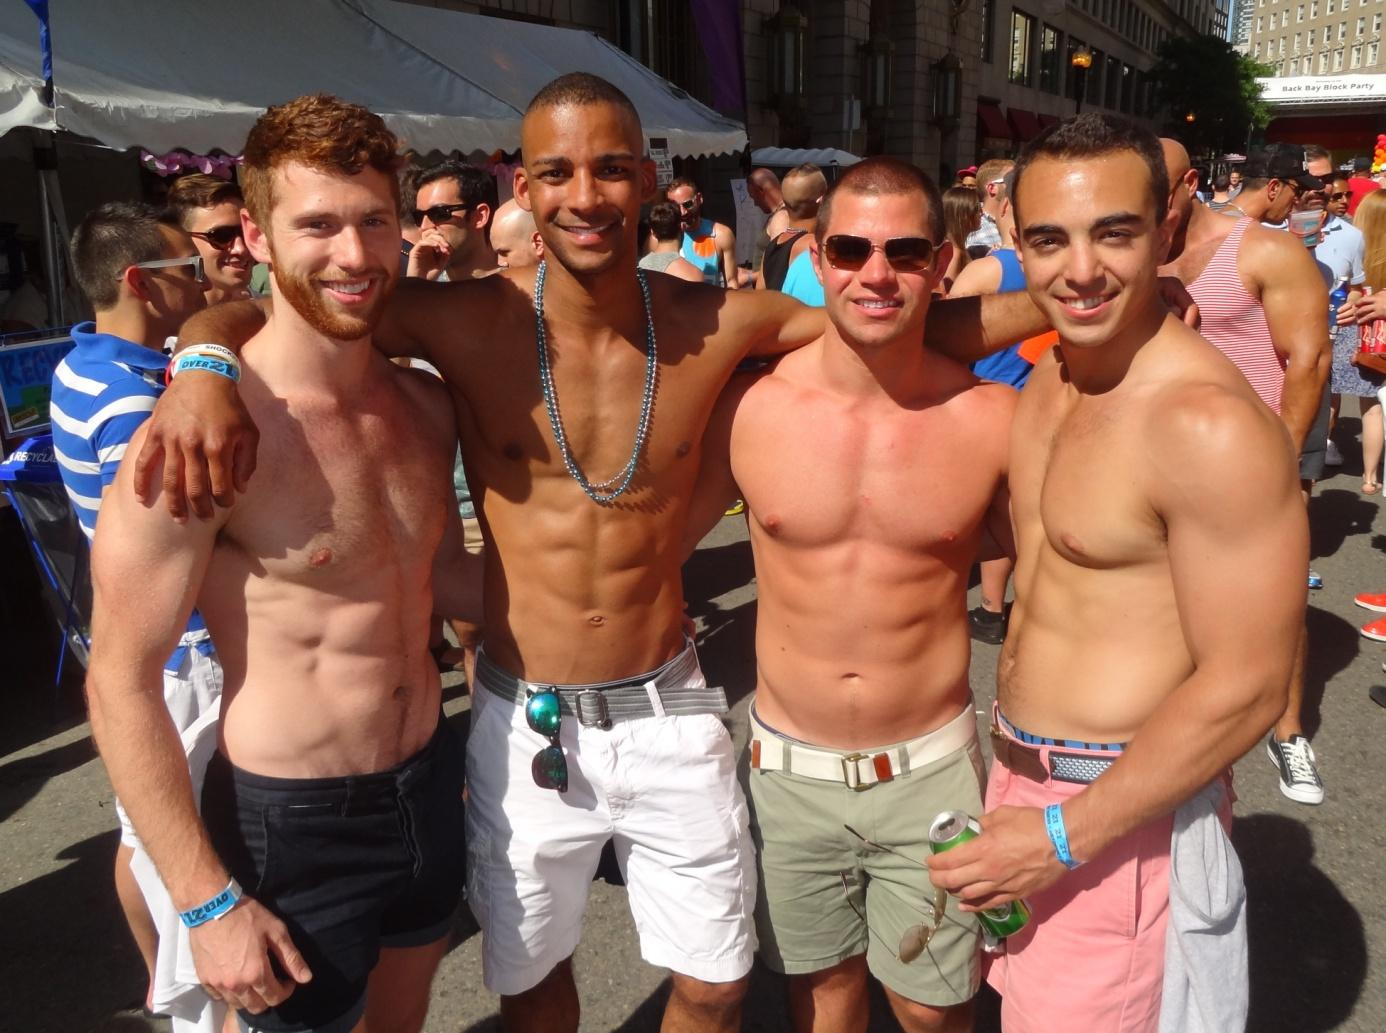 https://bosguydotcom.files.wordpress.com/2014/06/boston-pride-joe1.jpg